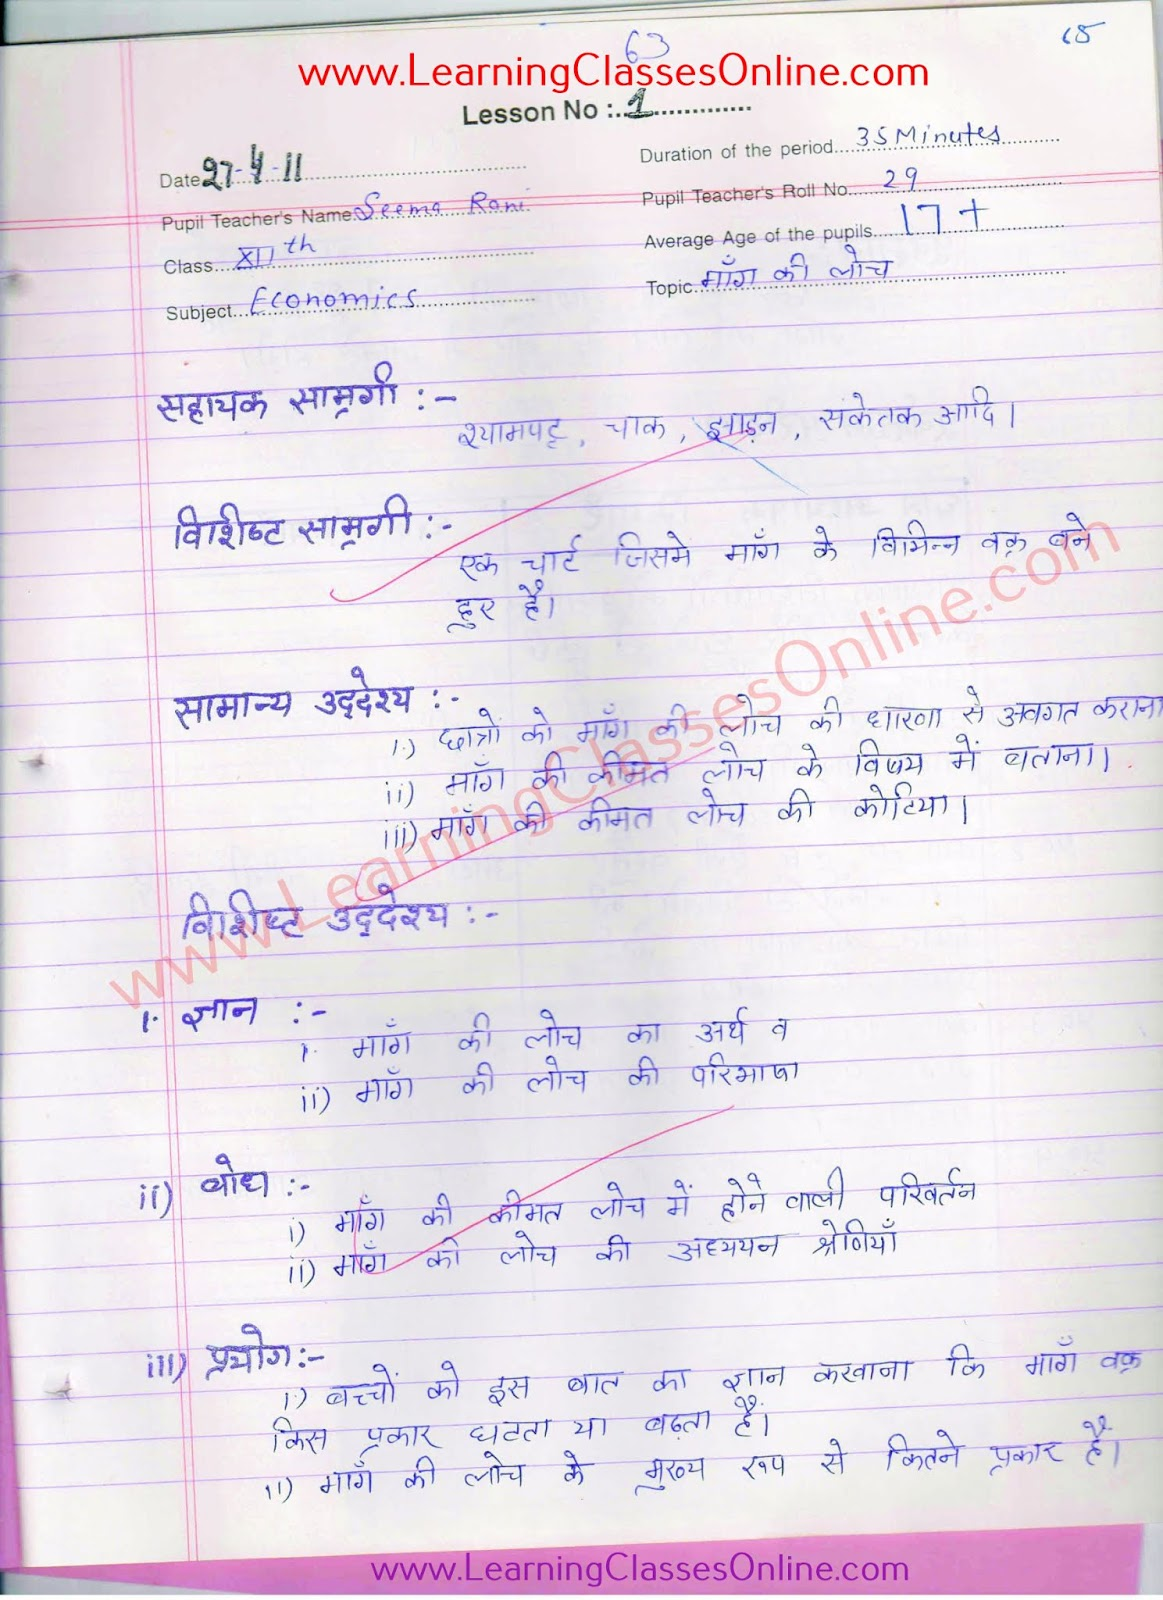 Elasticity of Demand Economics Lesson Plan in Hindi ( मांग की लोच पाठ योजना ) for Class 11th free download pdf